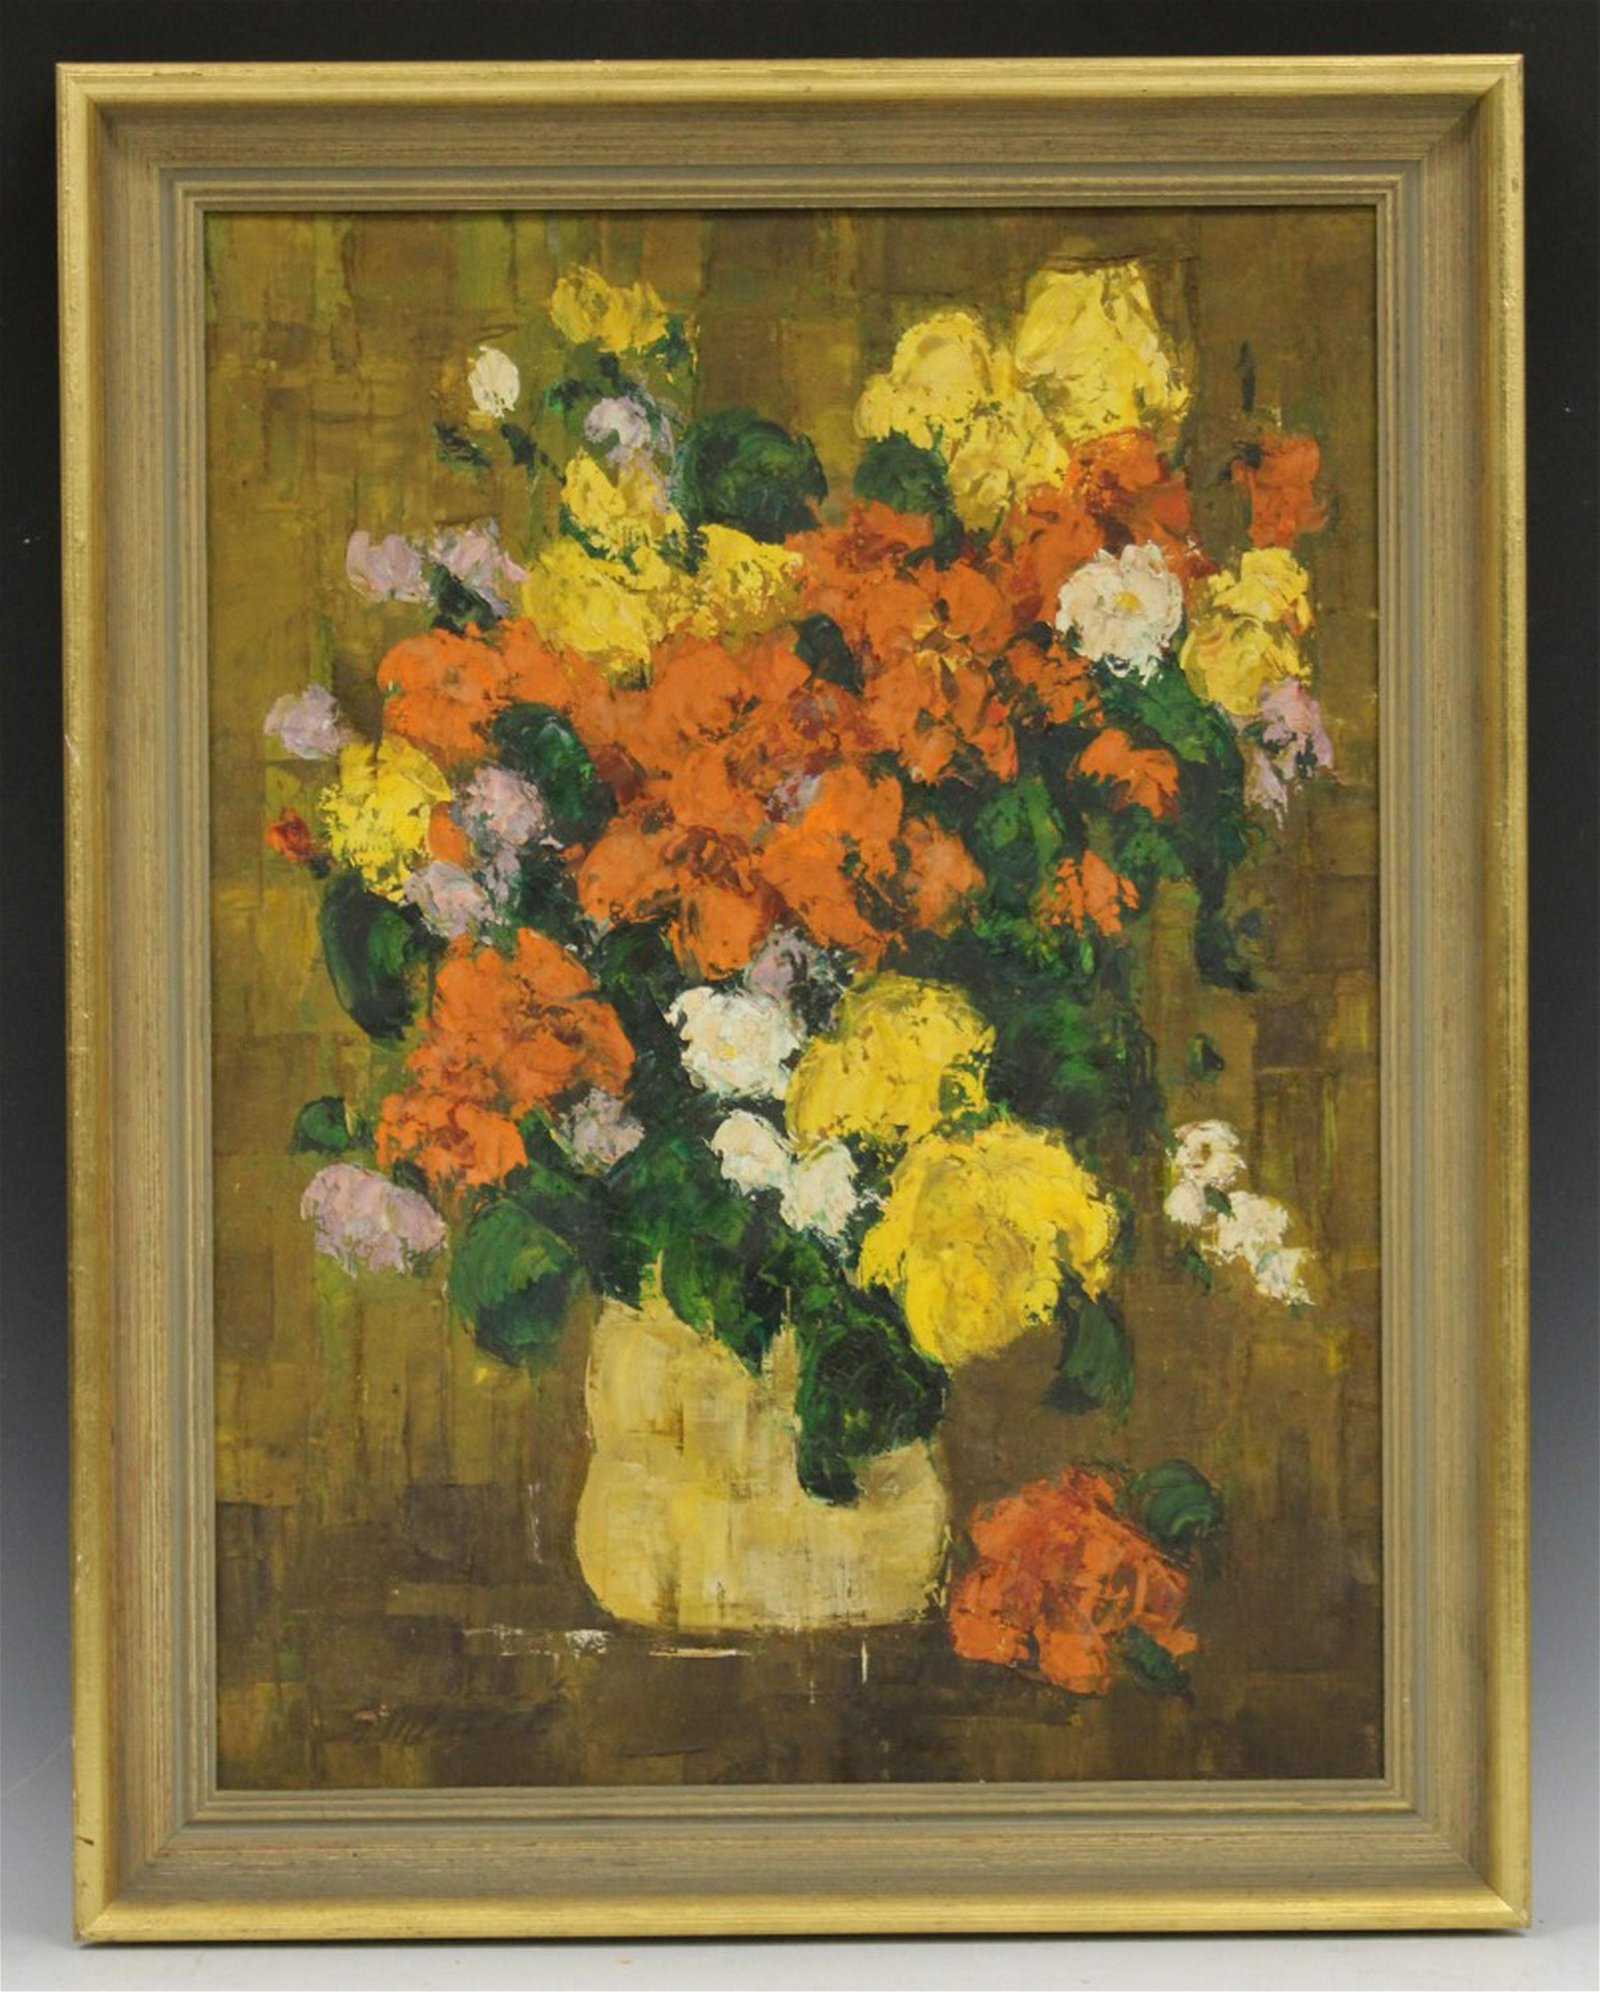 20TH C. OIL ON CANVAS OF FLORAL STILL LIFE